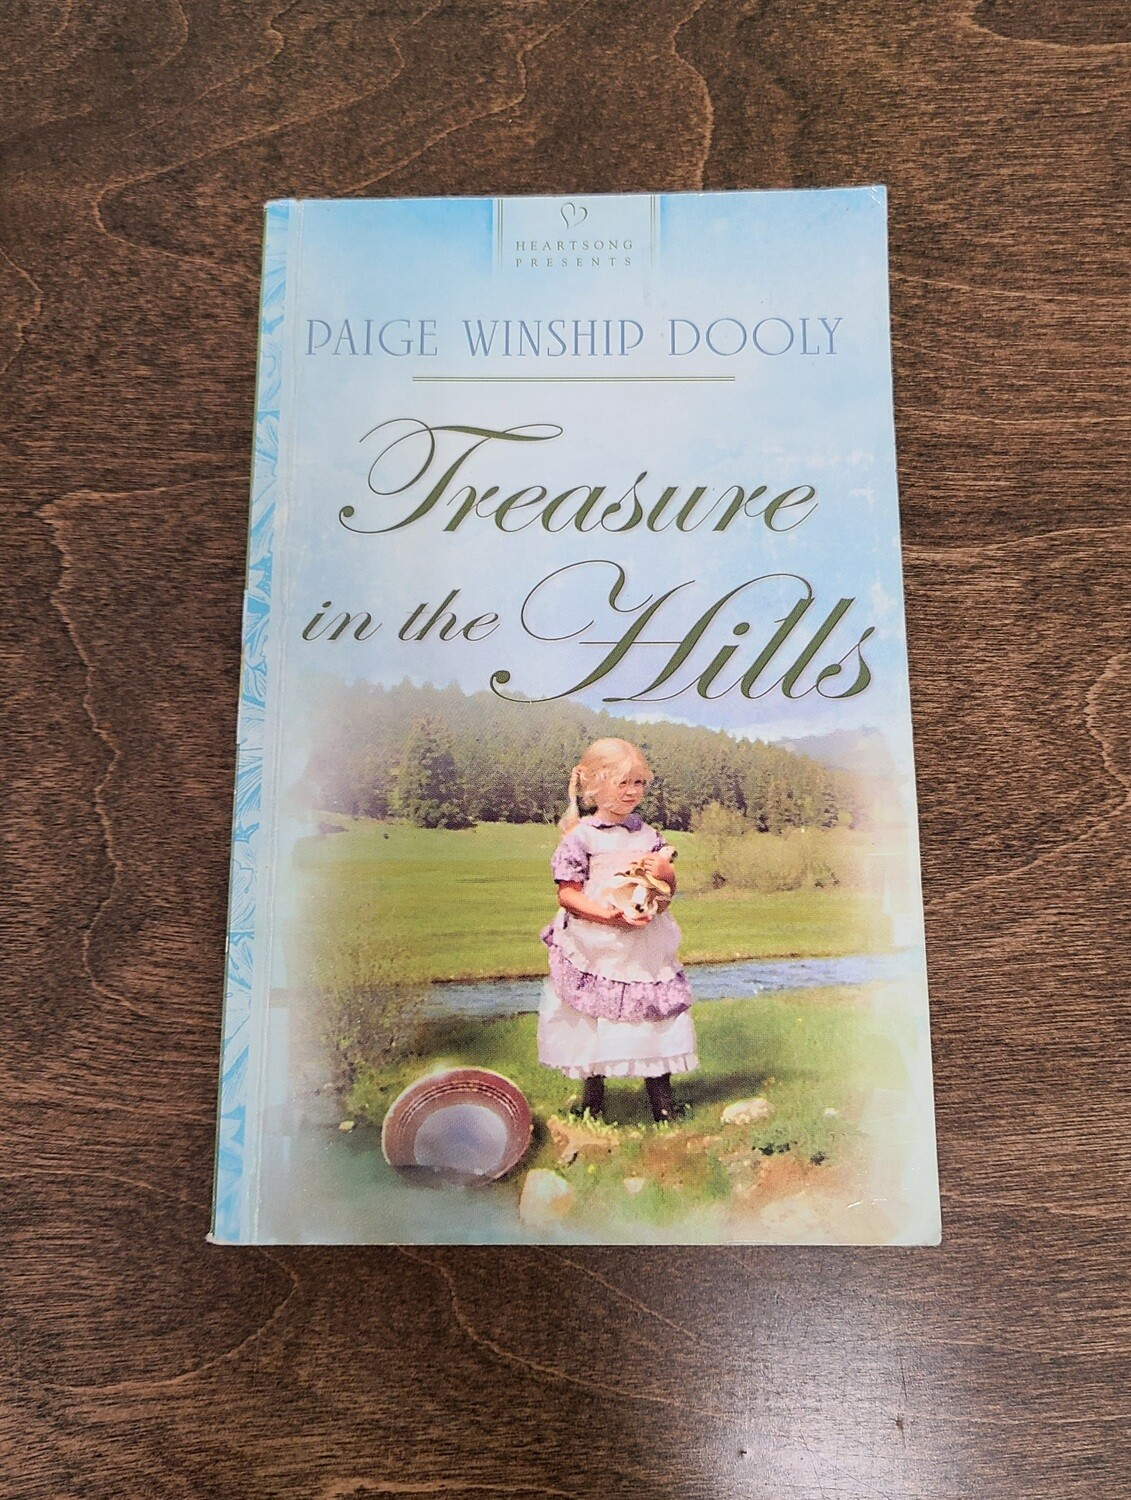 Treasure in the Hills by Paige Winship Dooly